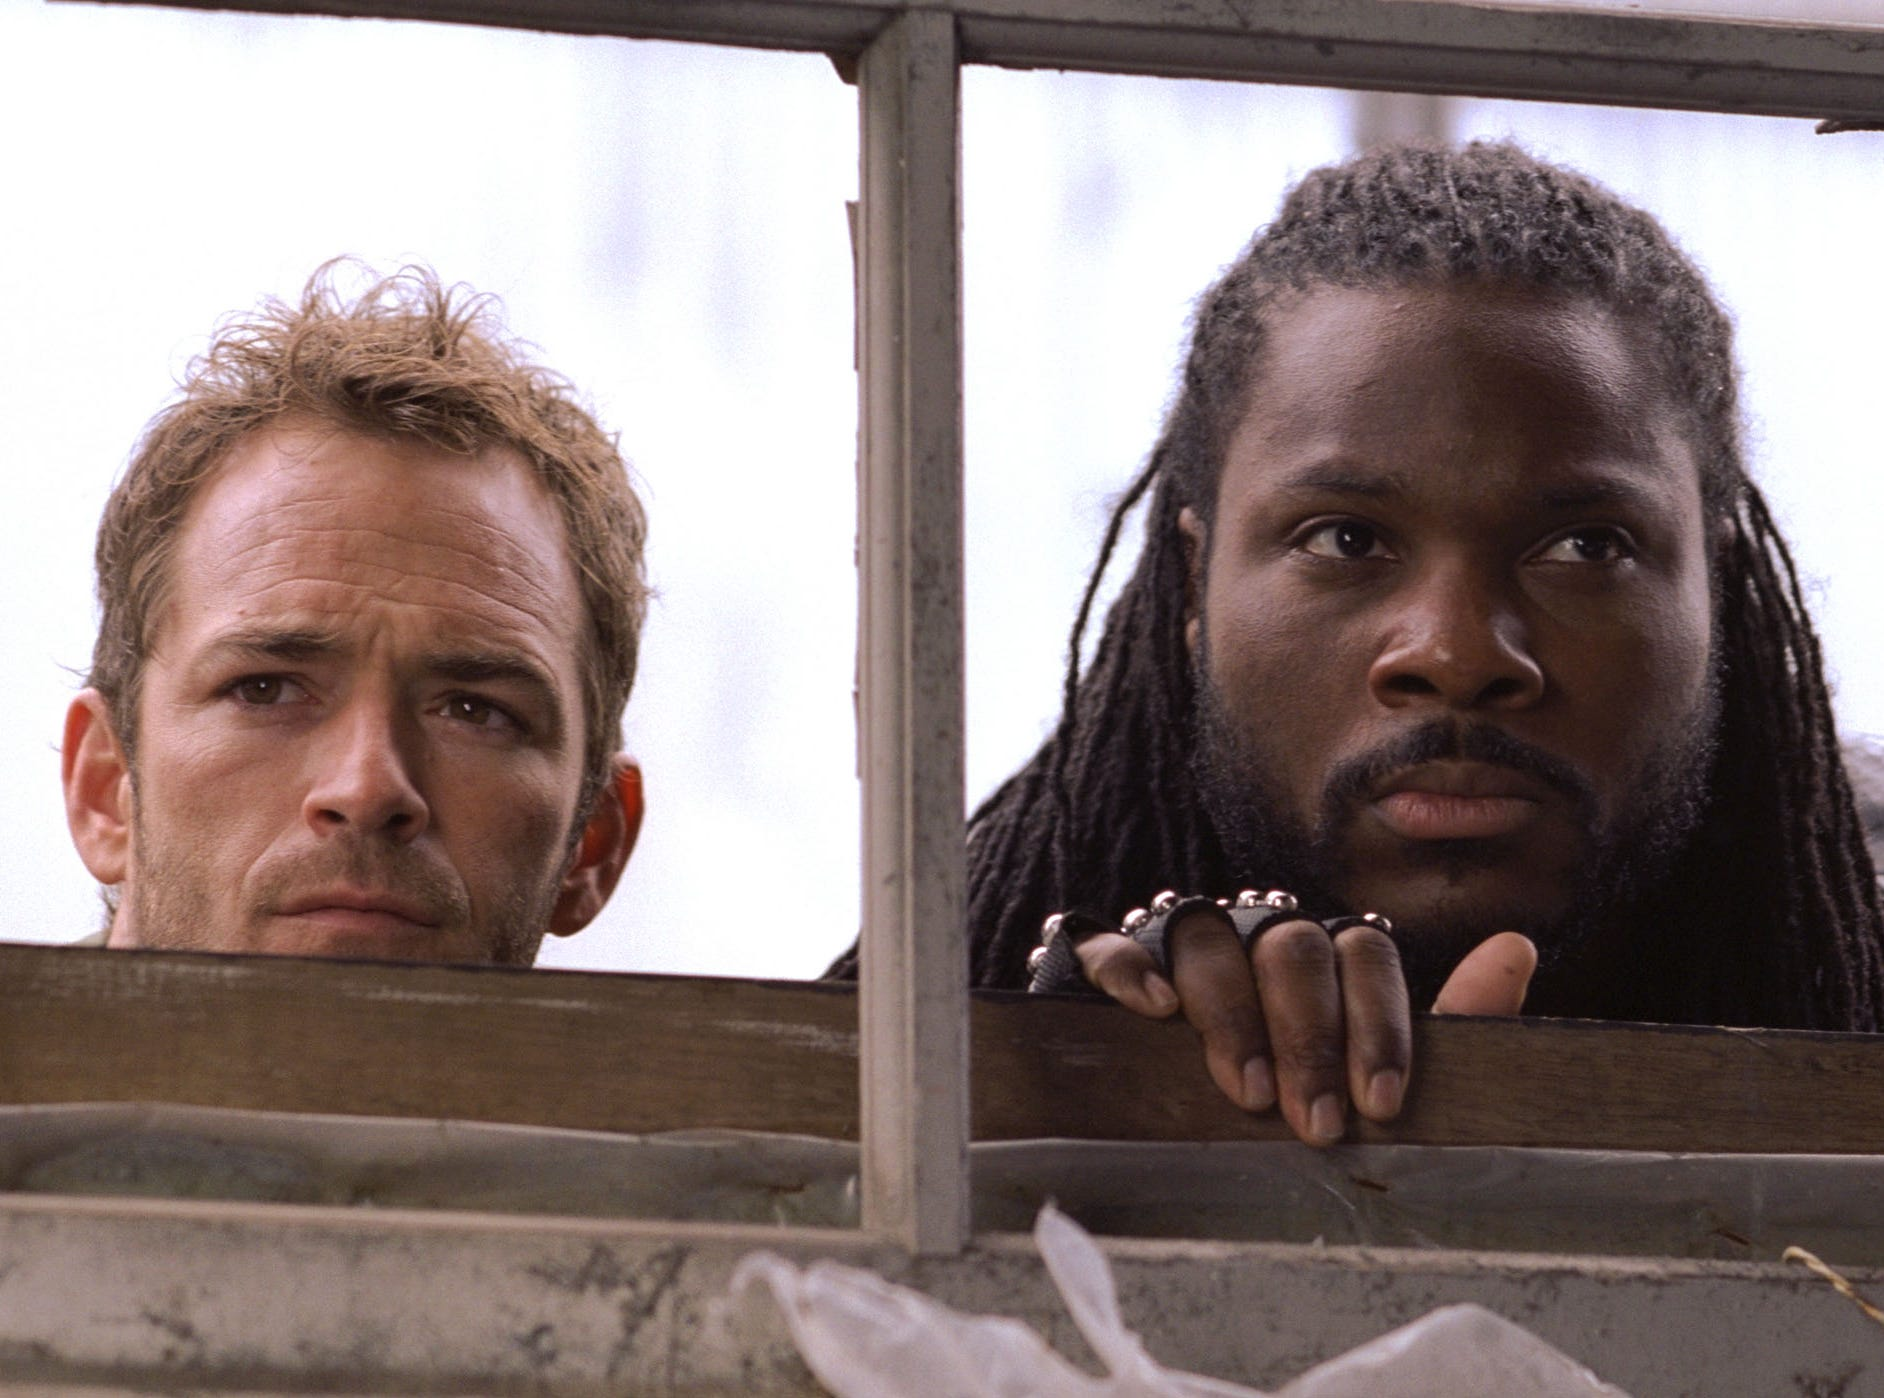 Luke Perry as Jeremiah and Malcolm-Jamal Warner as Kurdy on the Showtime program Jeremiah.